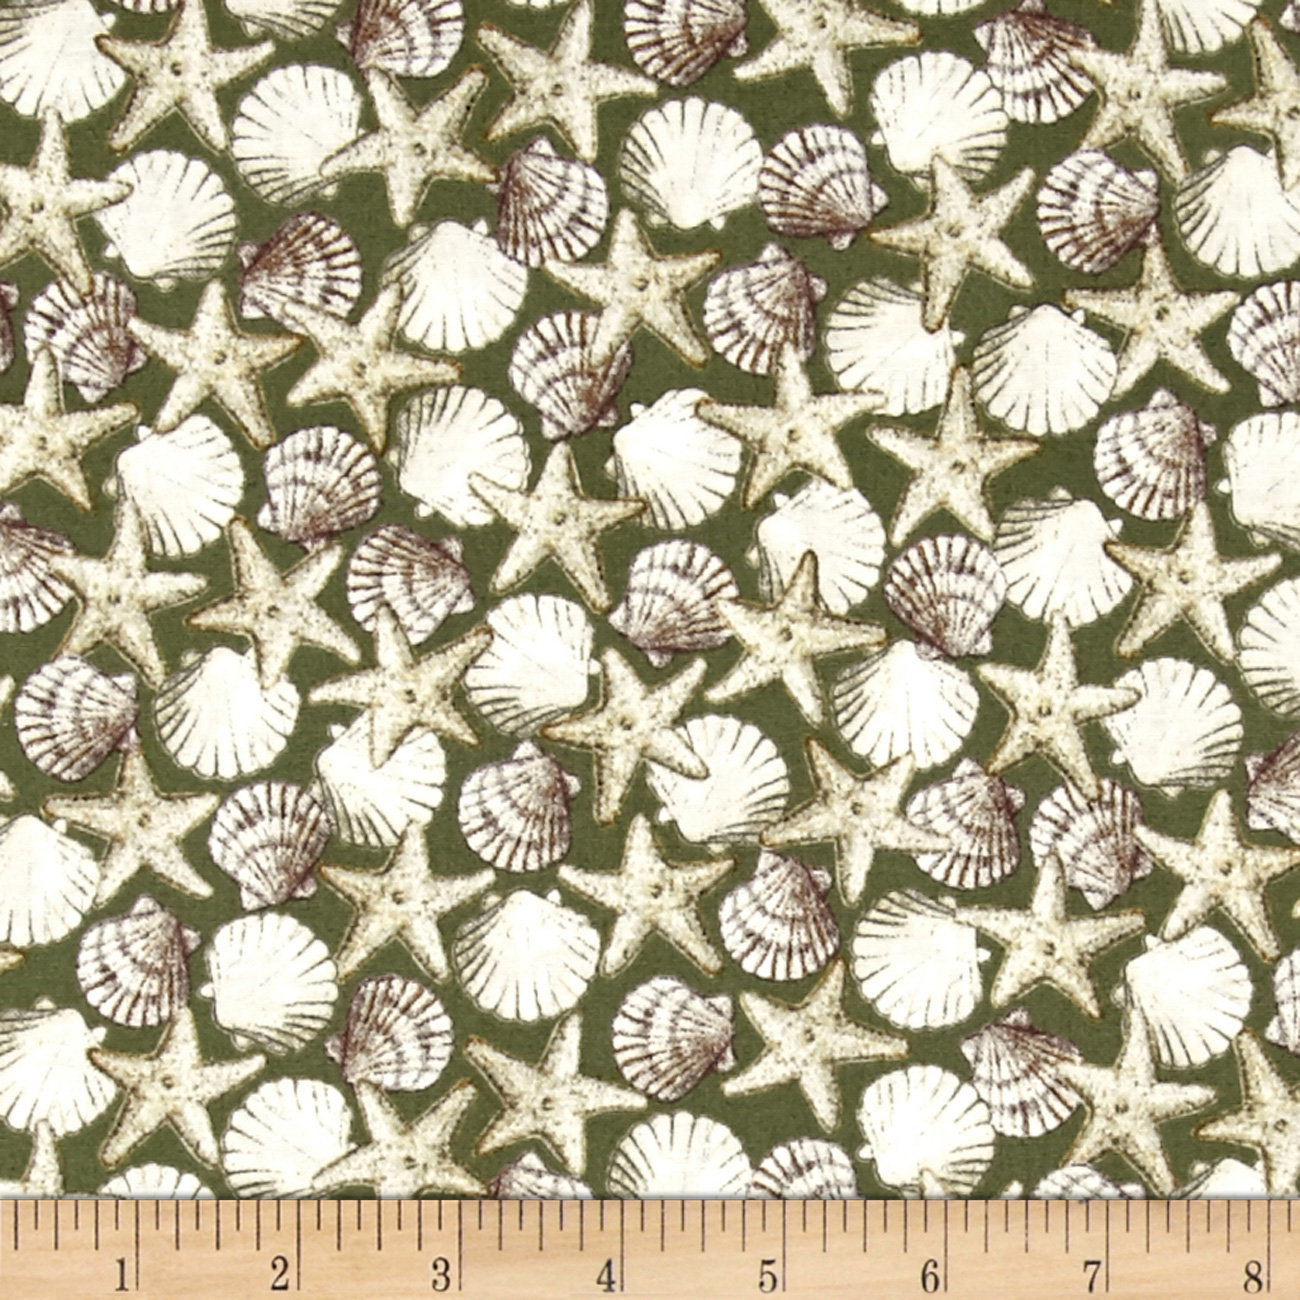 Seaside Shells Green Fabric by Quilting Treasures in USA